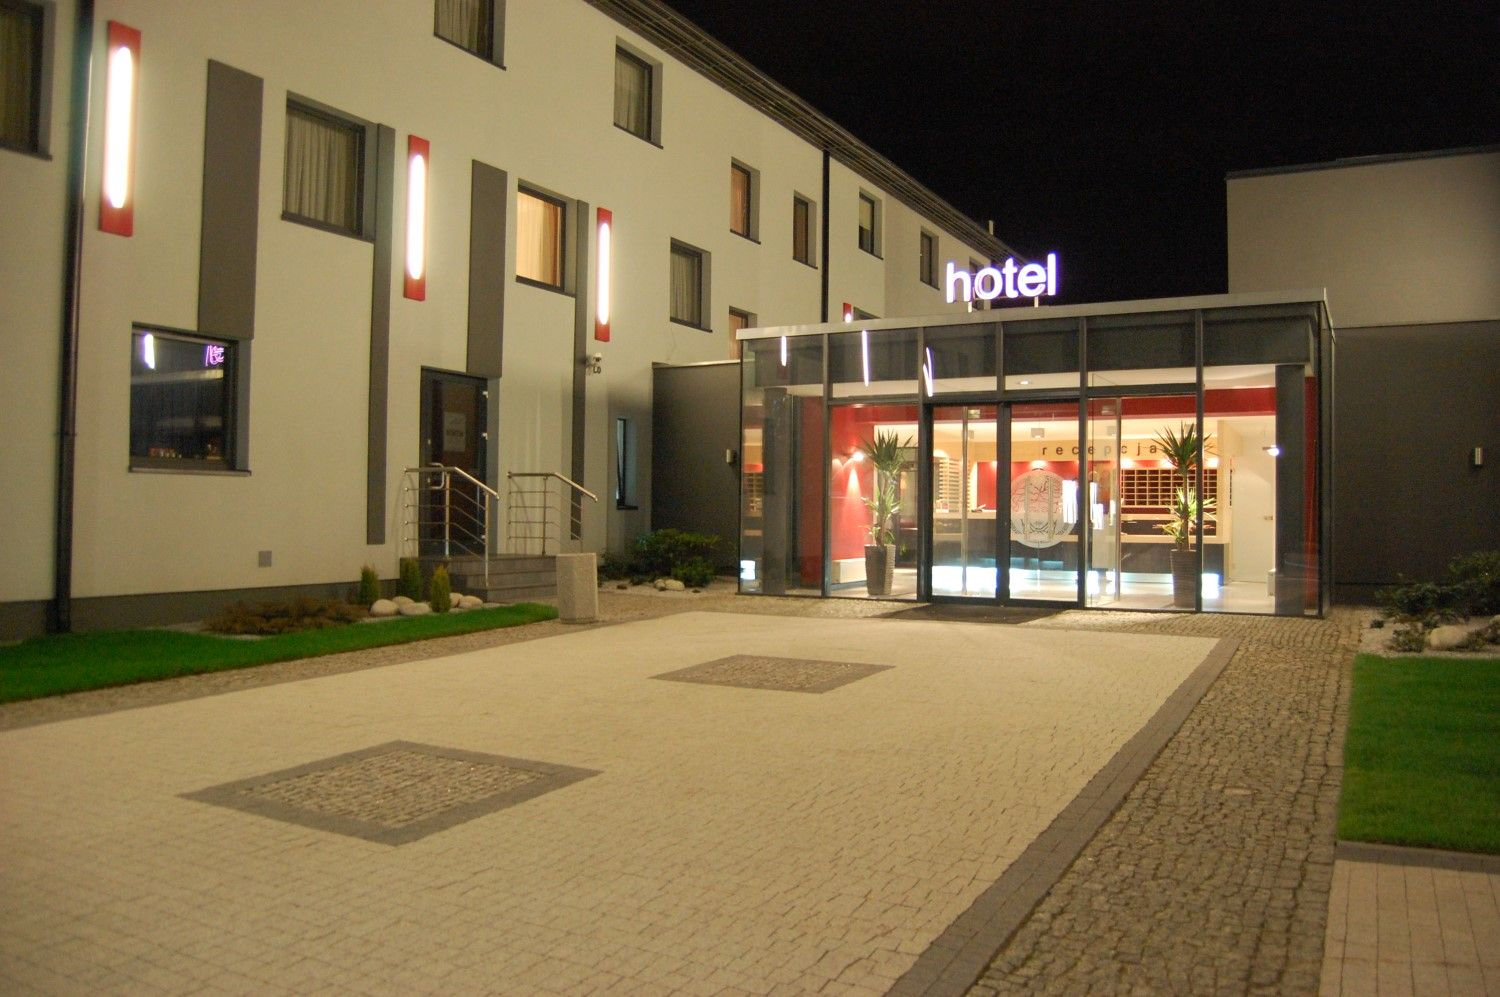 Hotel Arena w Tychach